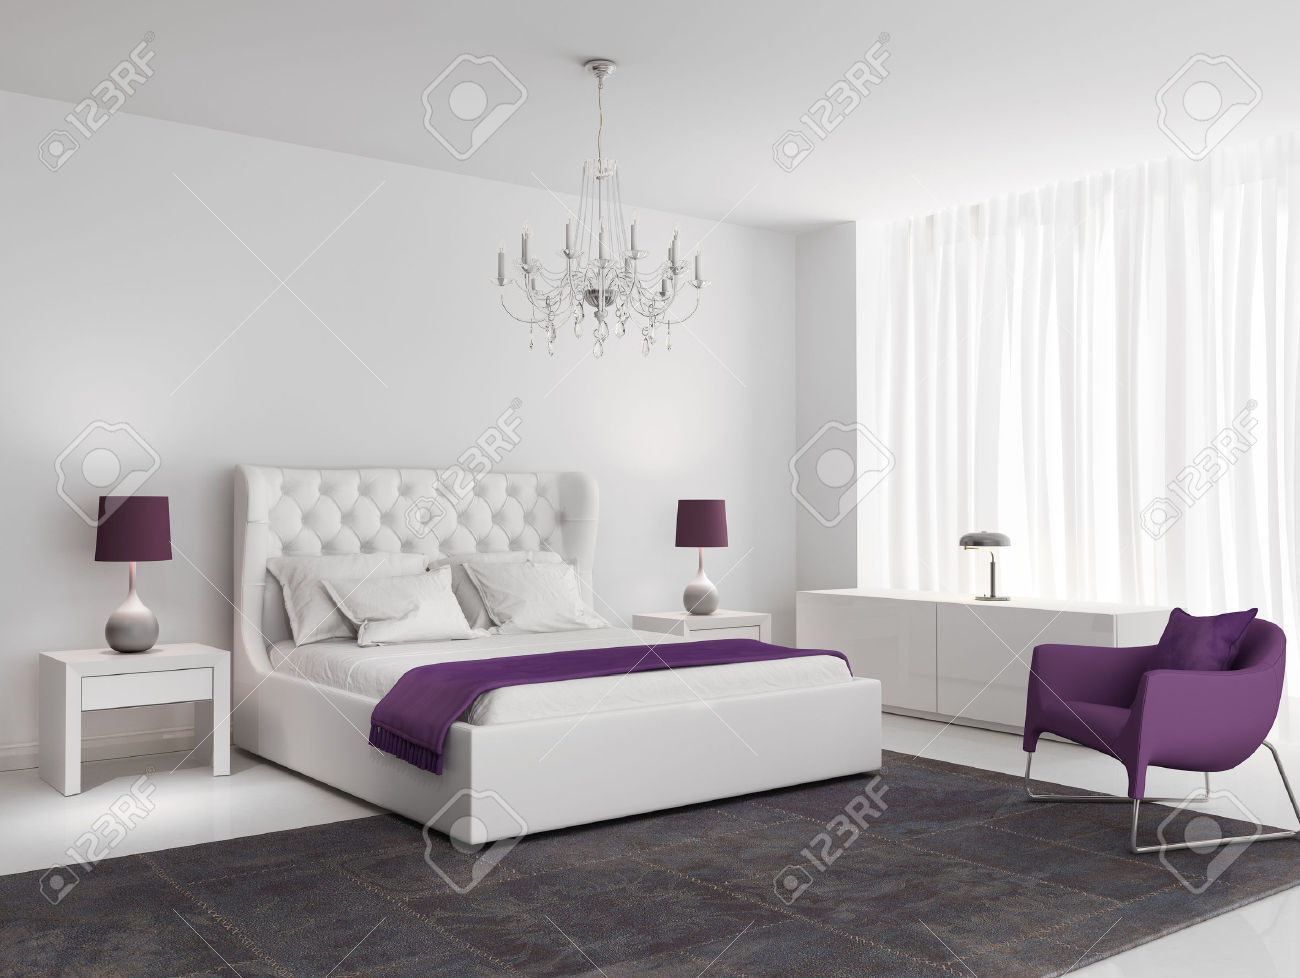 tapis de chambre blanc id es de d coration int rieure french decor. Black Bedroom Furniture Sets. Home Design Ideas